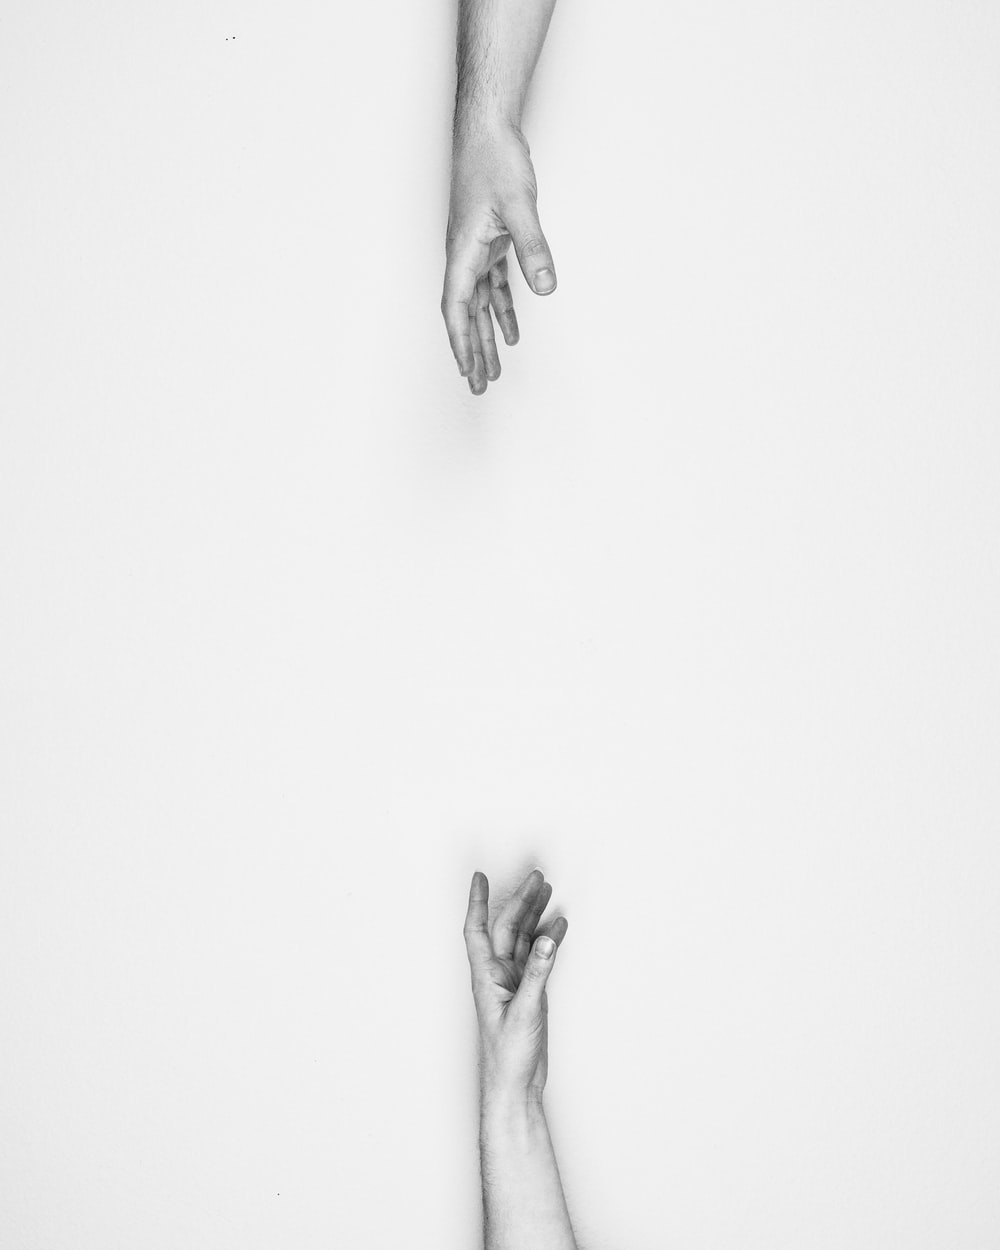 Two hands reaching for each other.